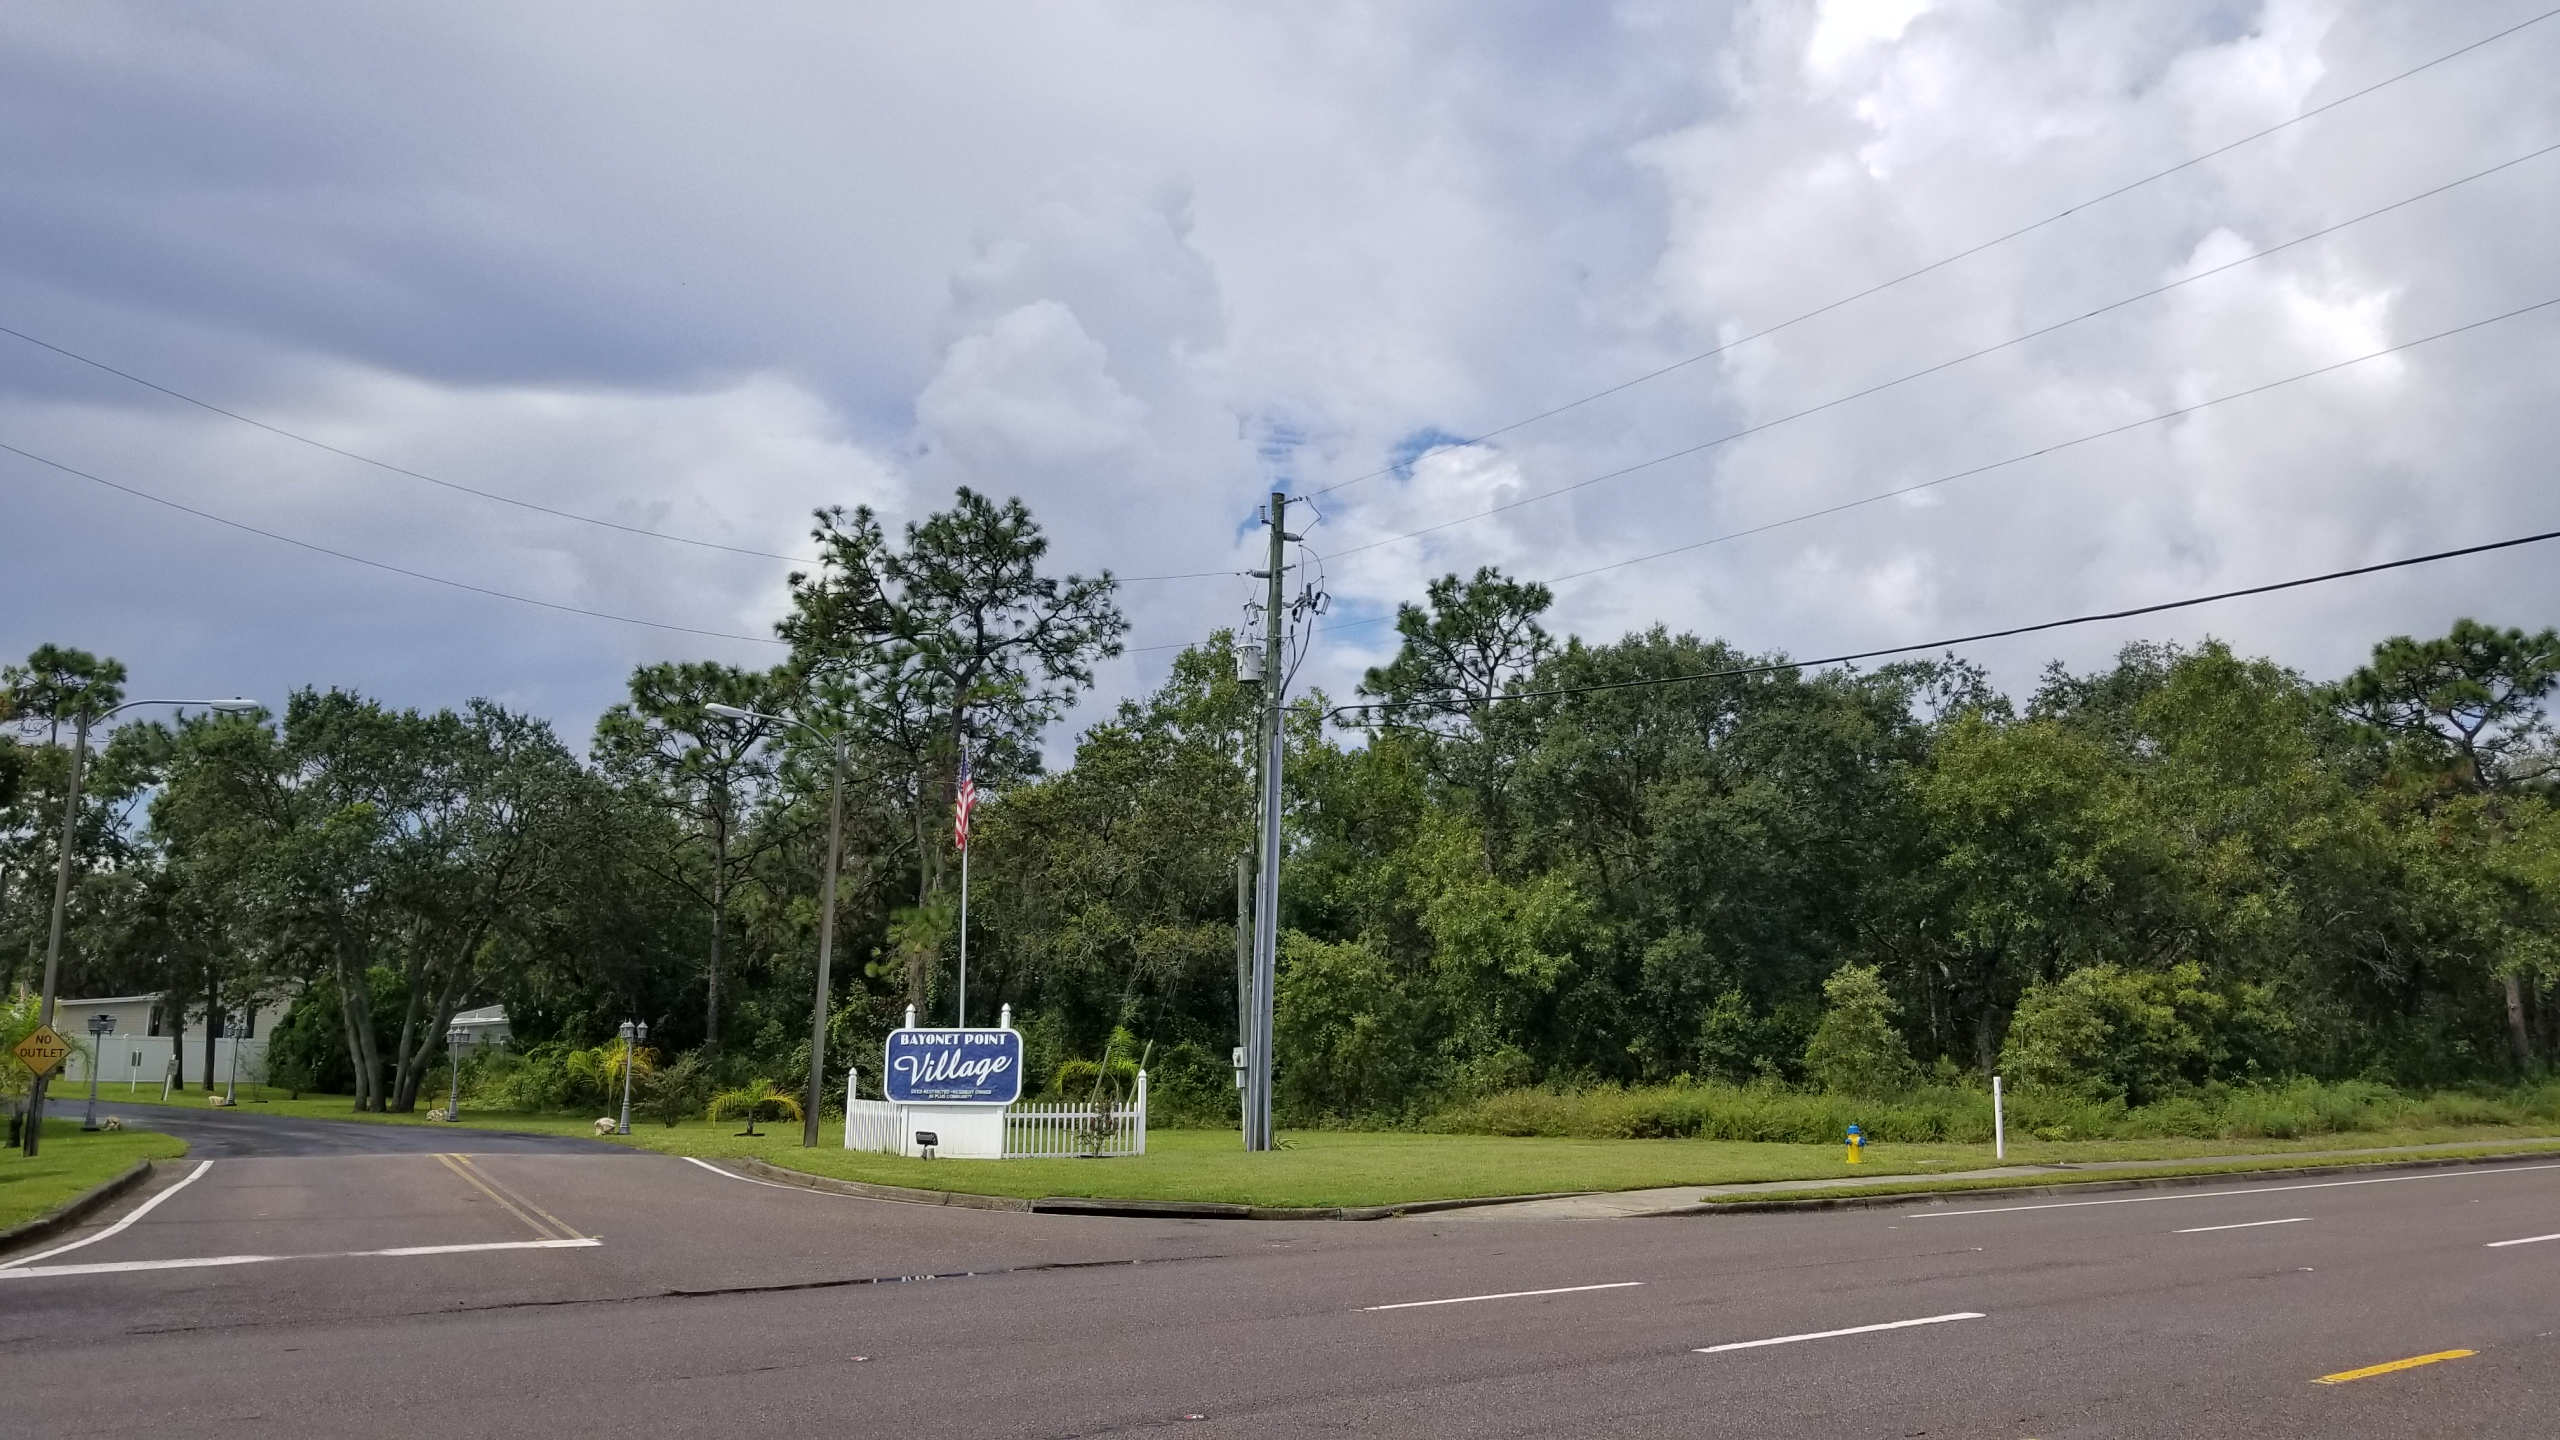 Land - State Rd 52 - 4 Acres + for 2 Corner Lots Zoned C2